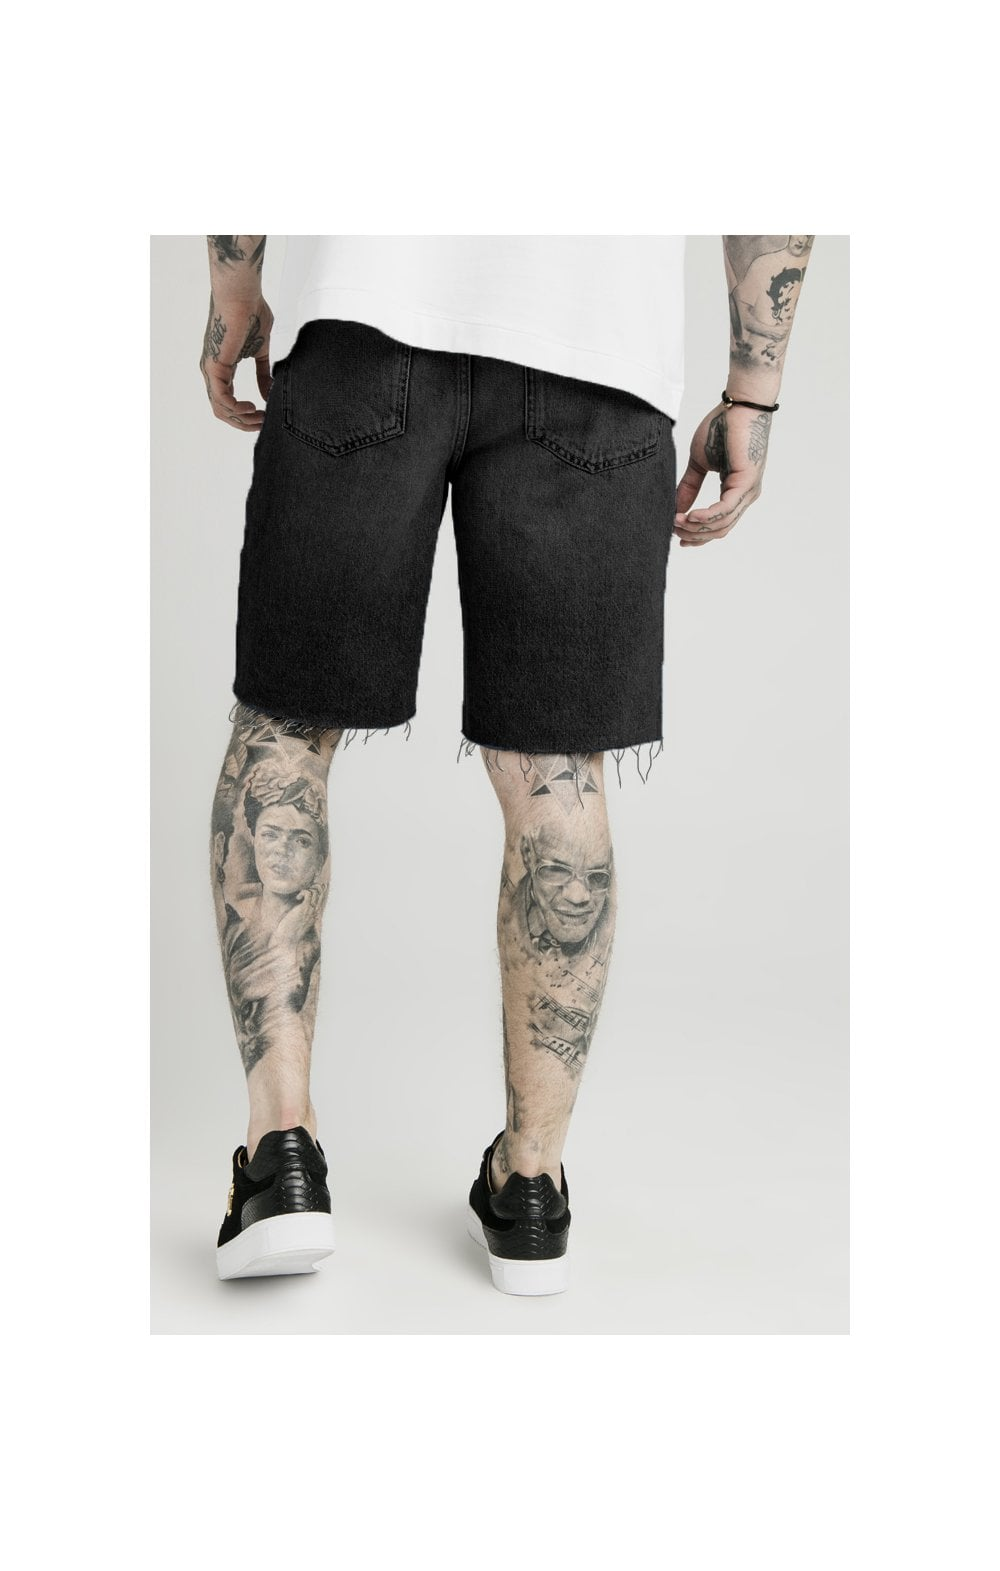 Load image into Gallery viewer, SikSilk x Dani Alves Loose Fit Denim Shorts - Black (1)